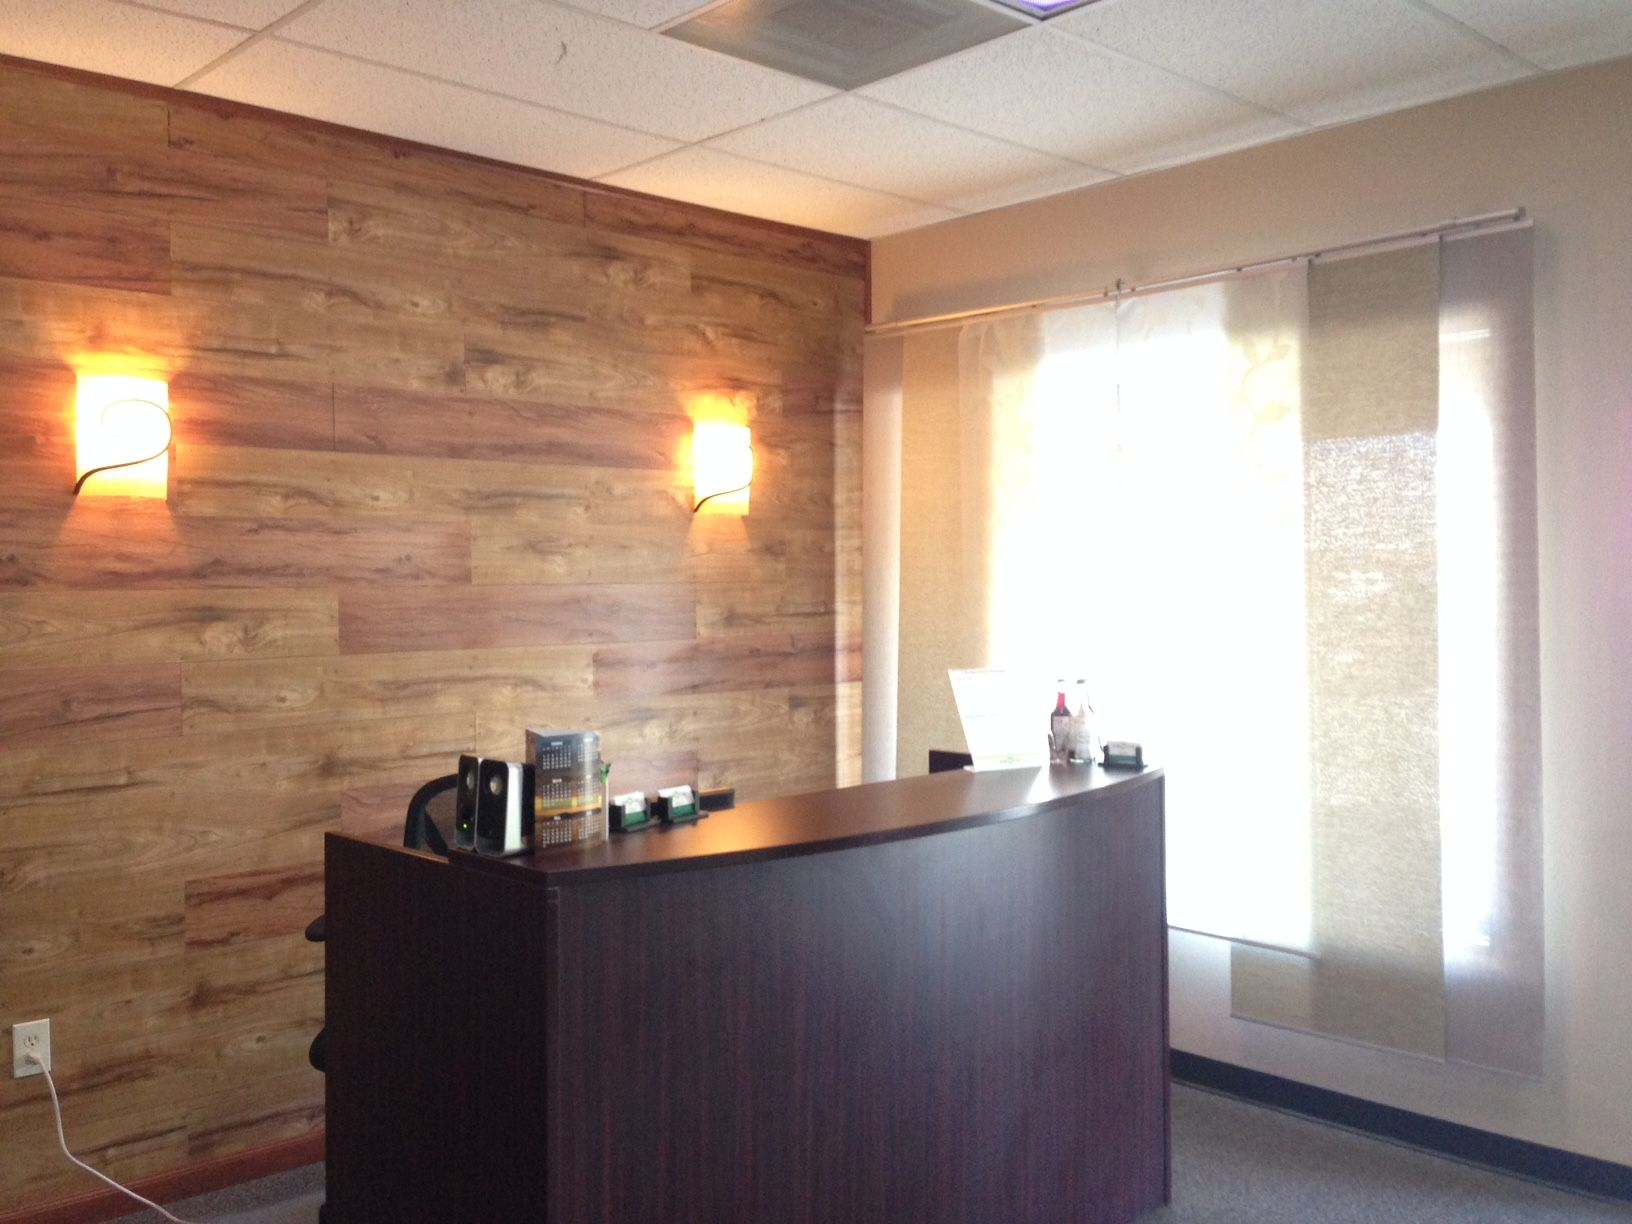 jade star acupuncture s newly remodeled office with wood paneling